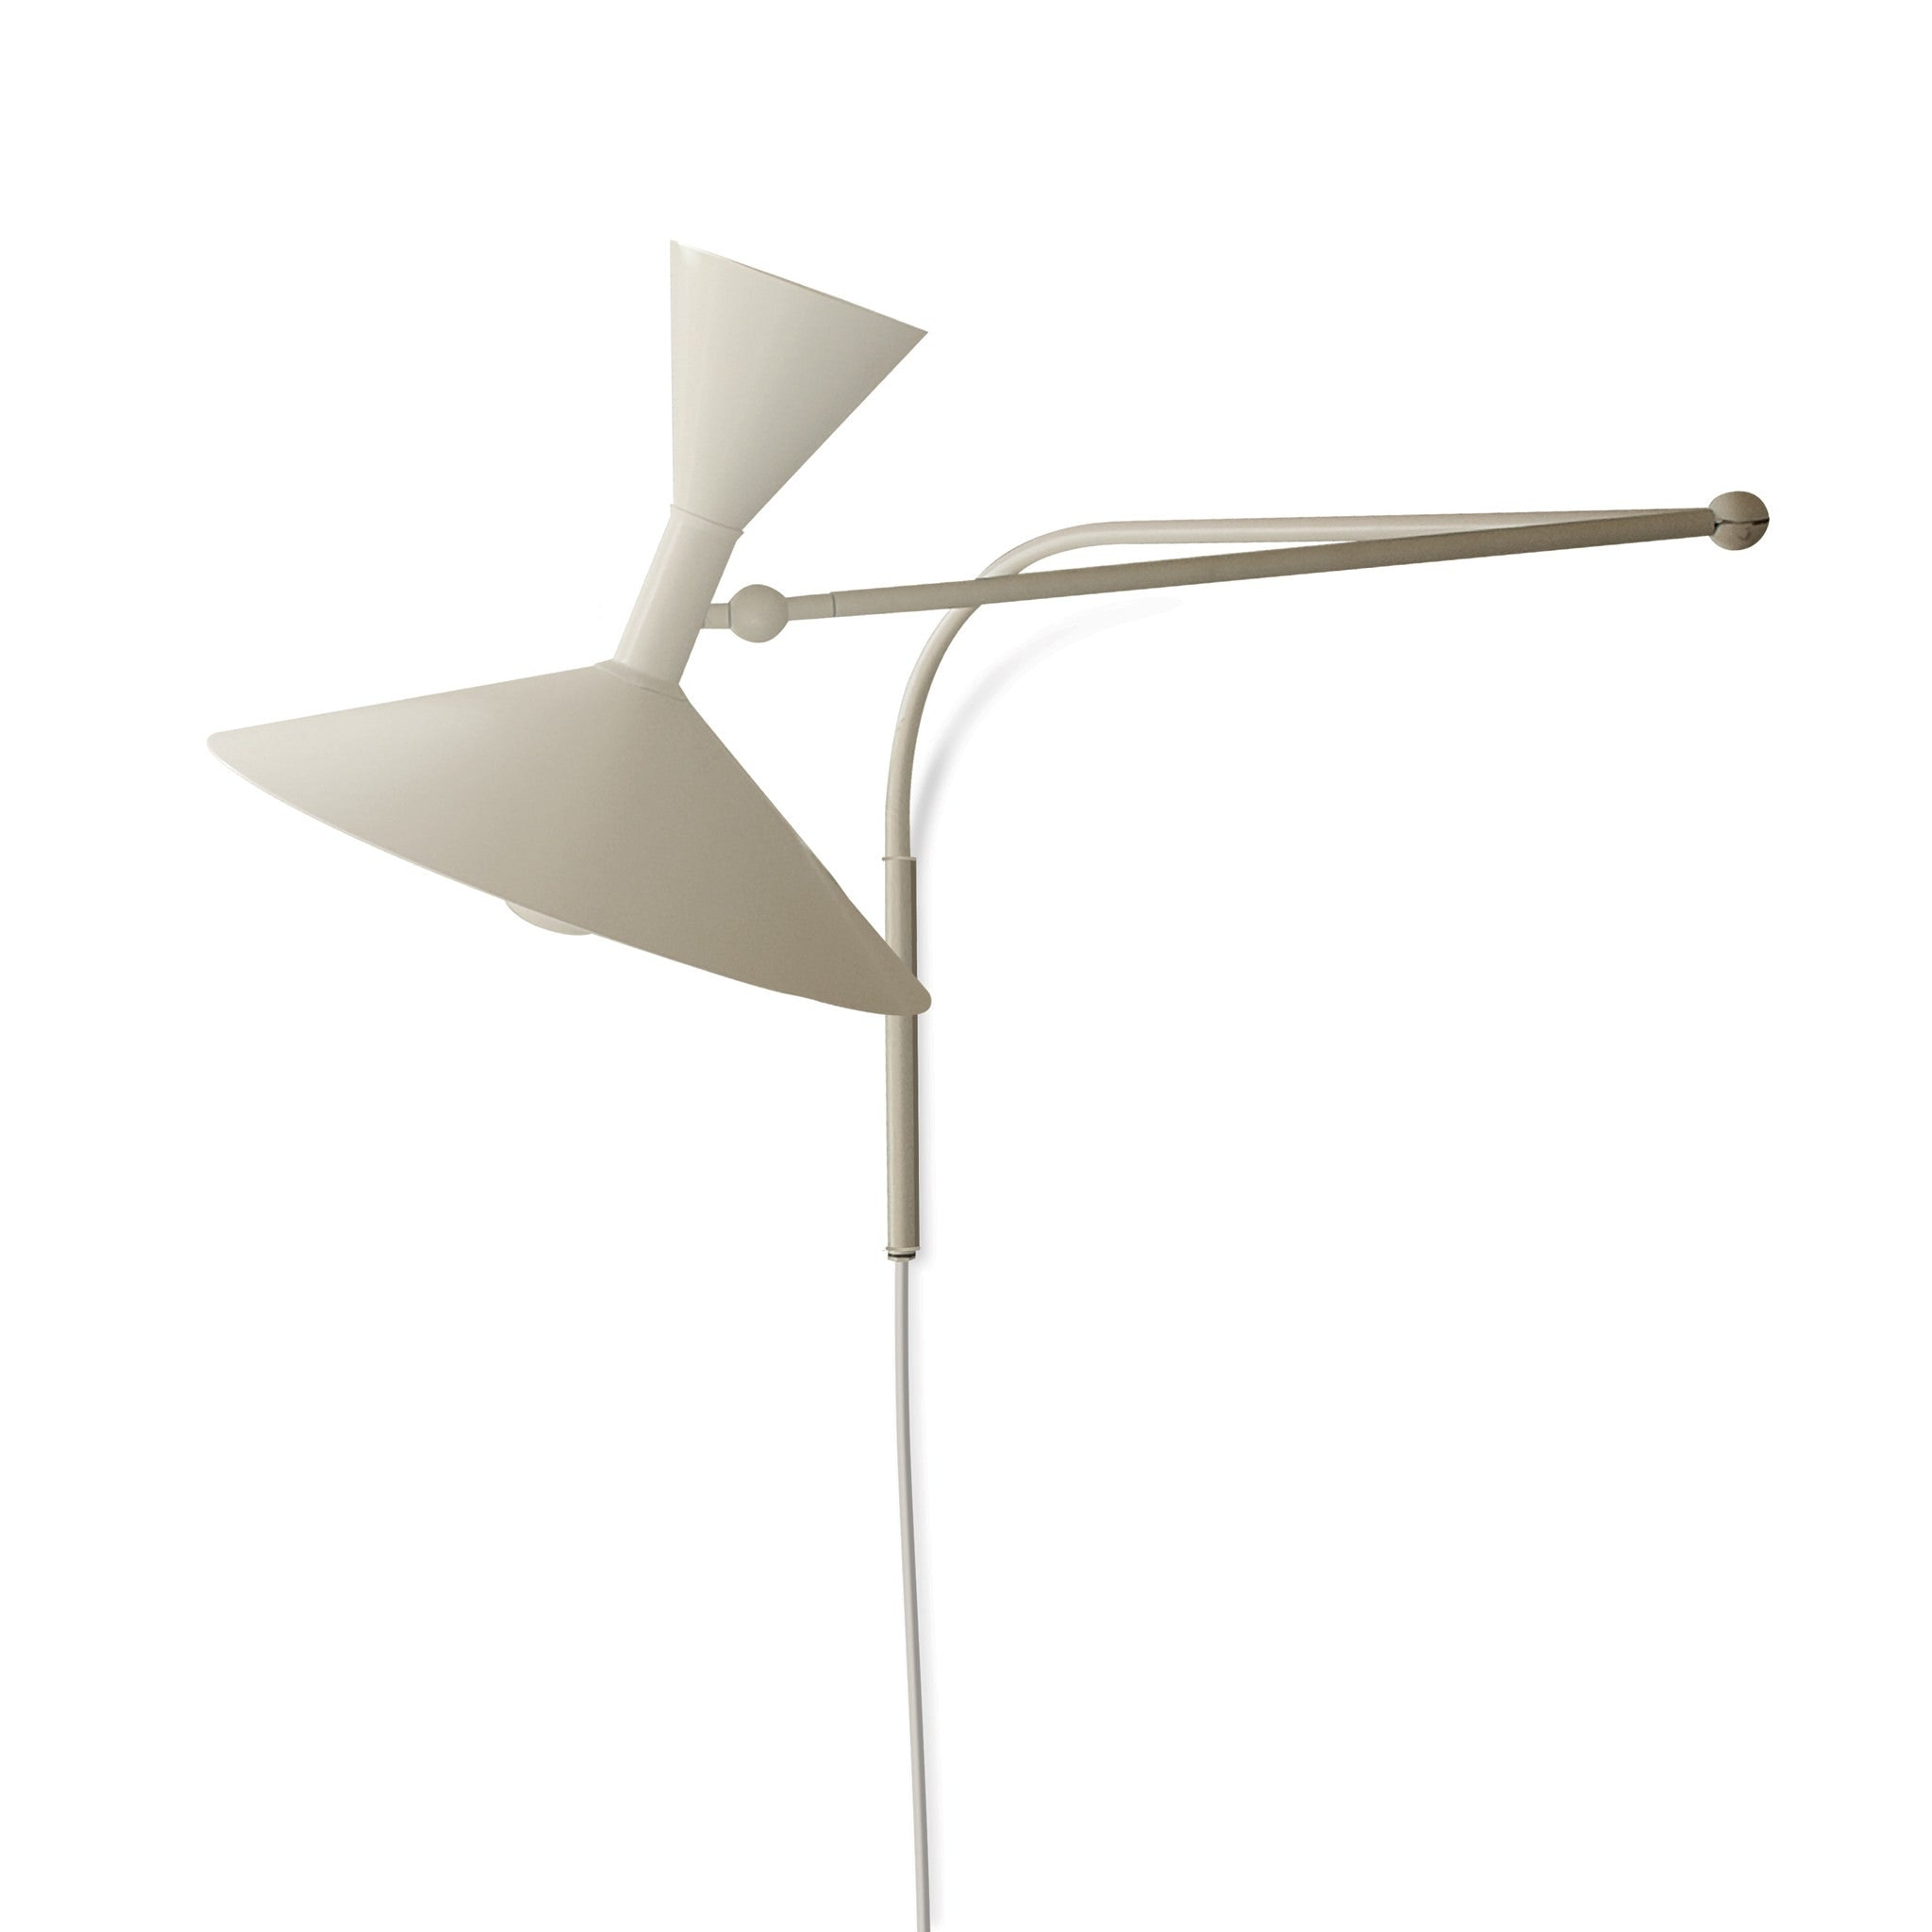 Lampe de Marseille by Le Corbusier